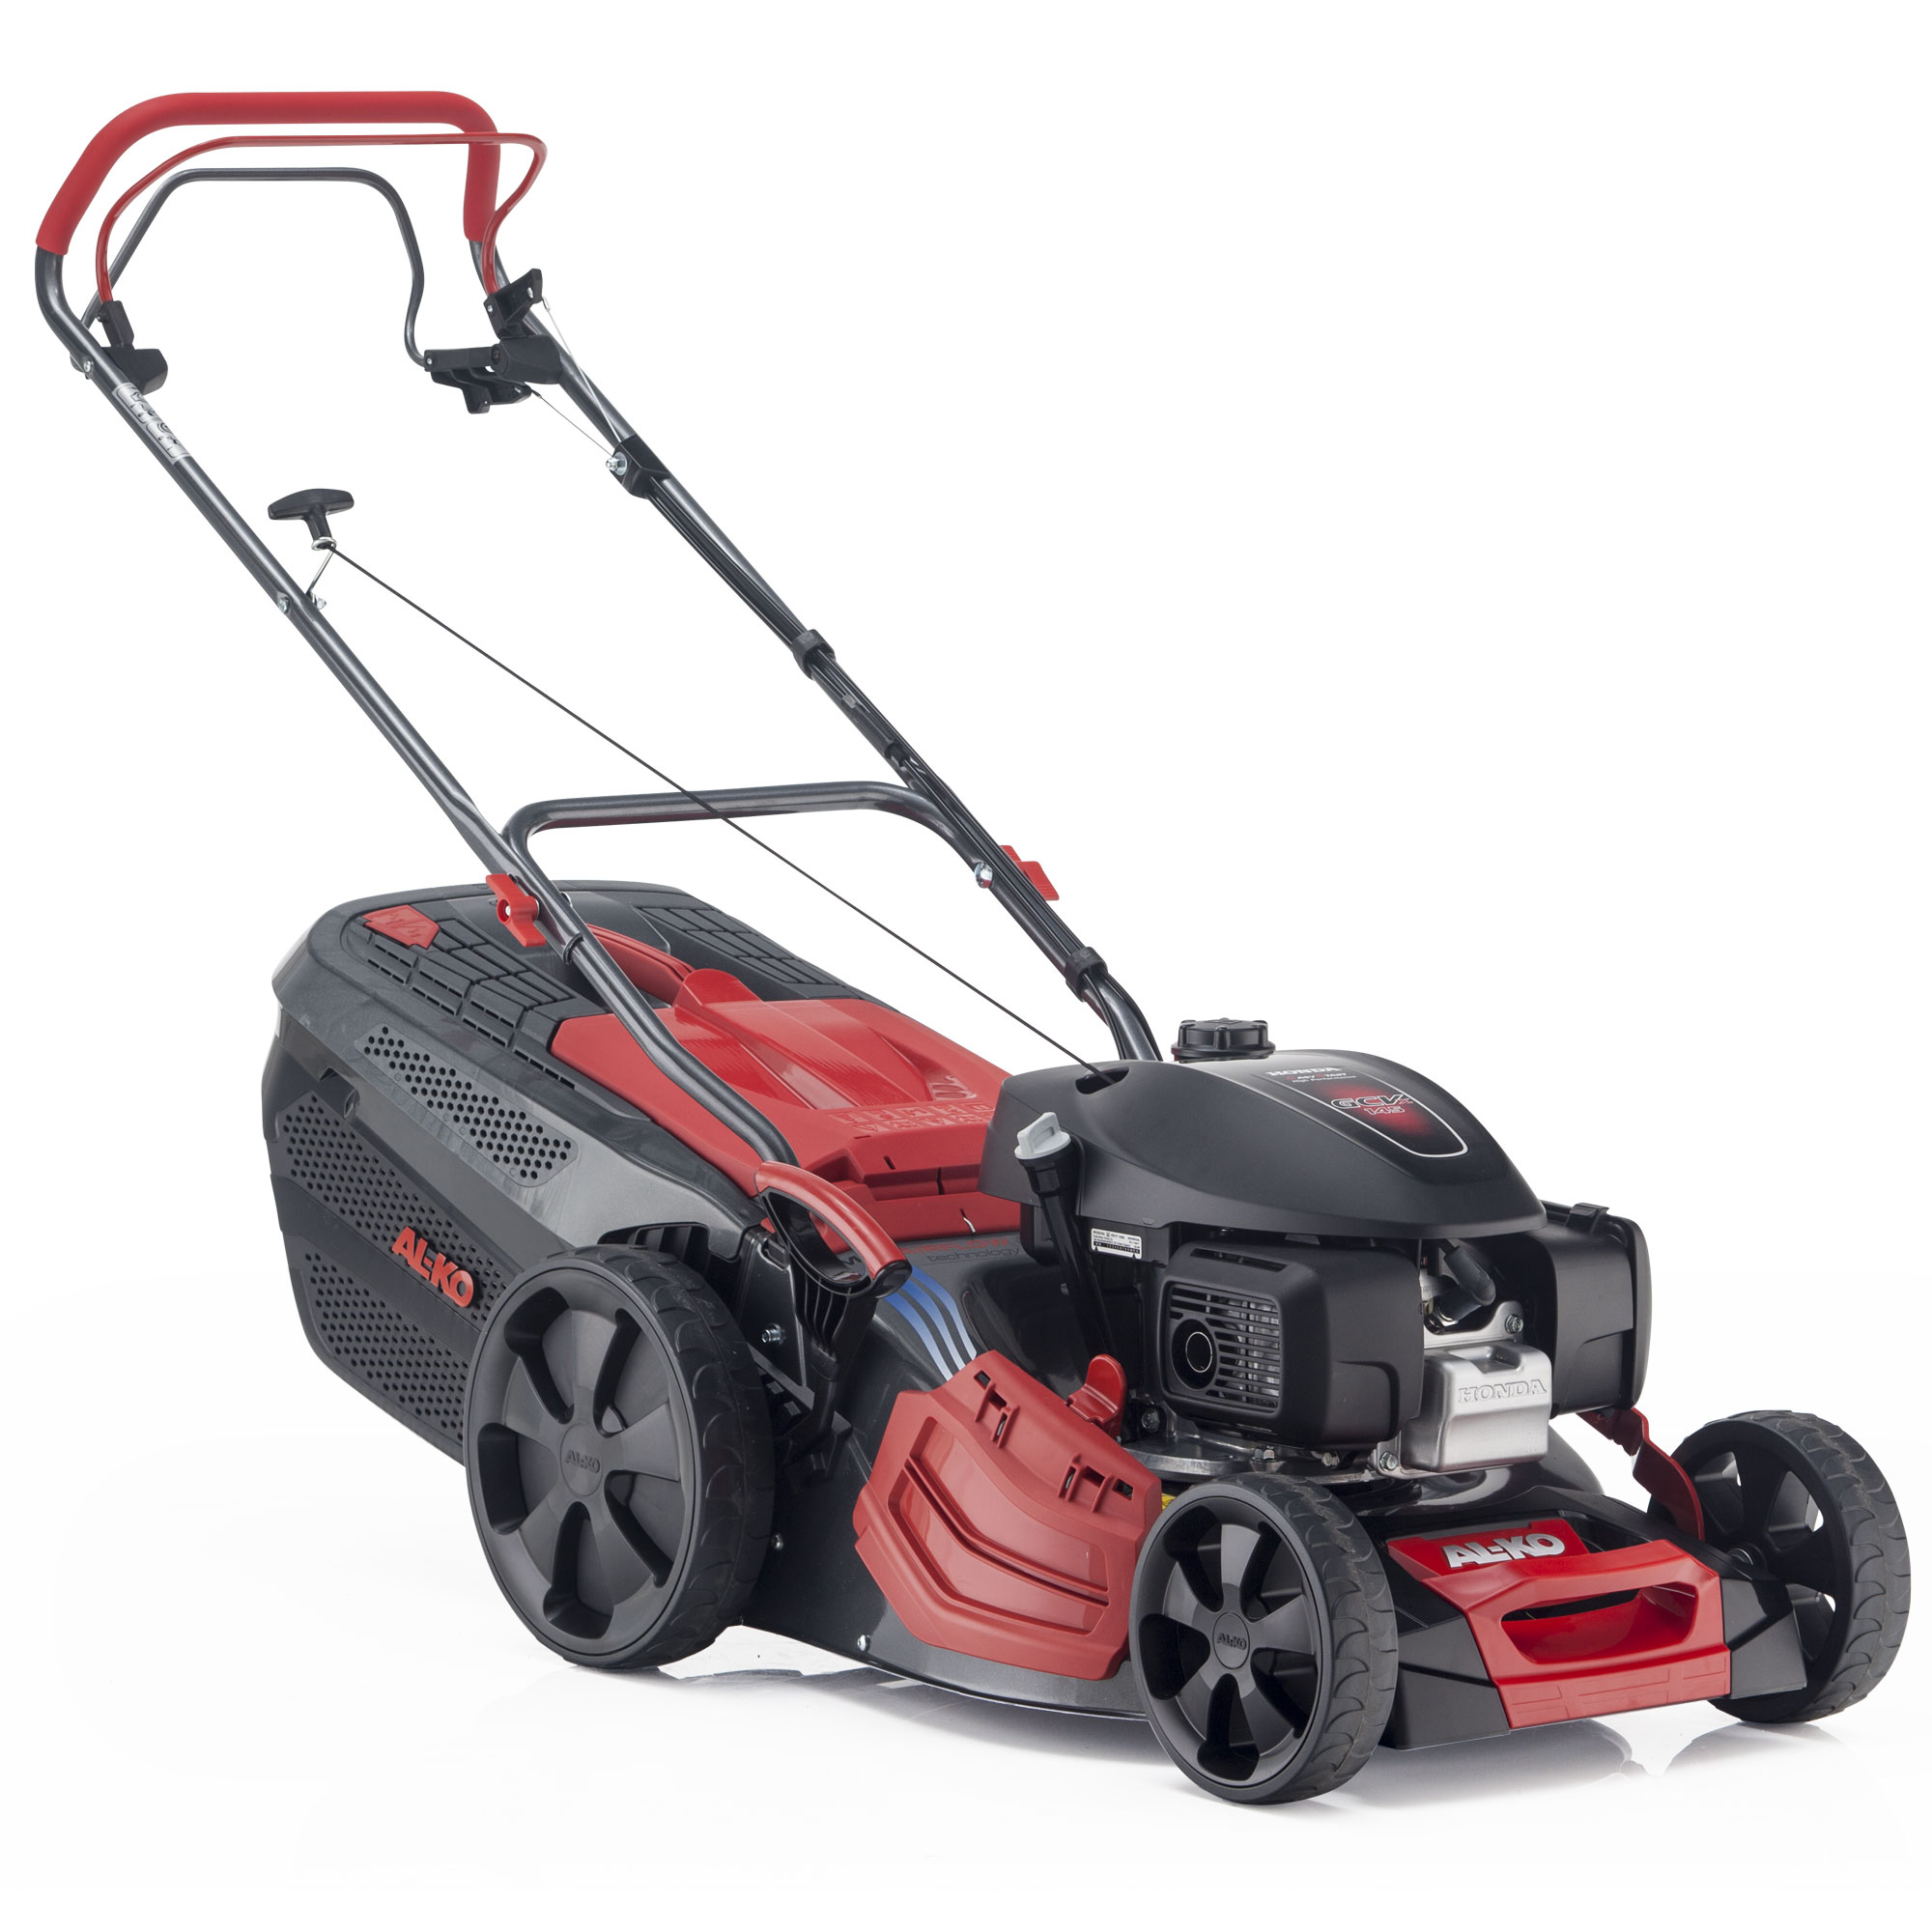 AL-KO PREMIUM 470 SP-H MOWER